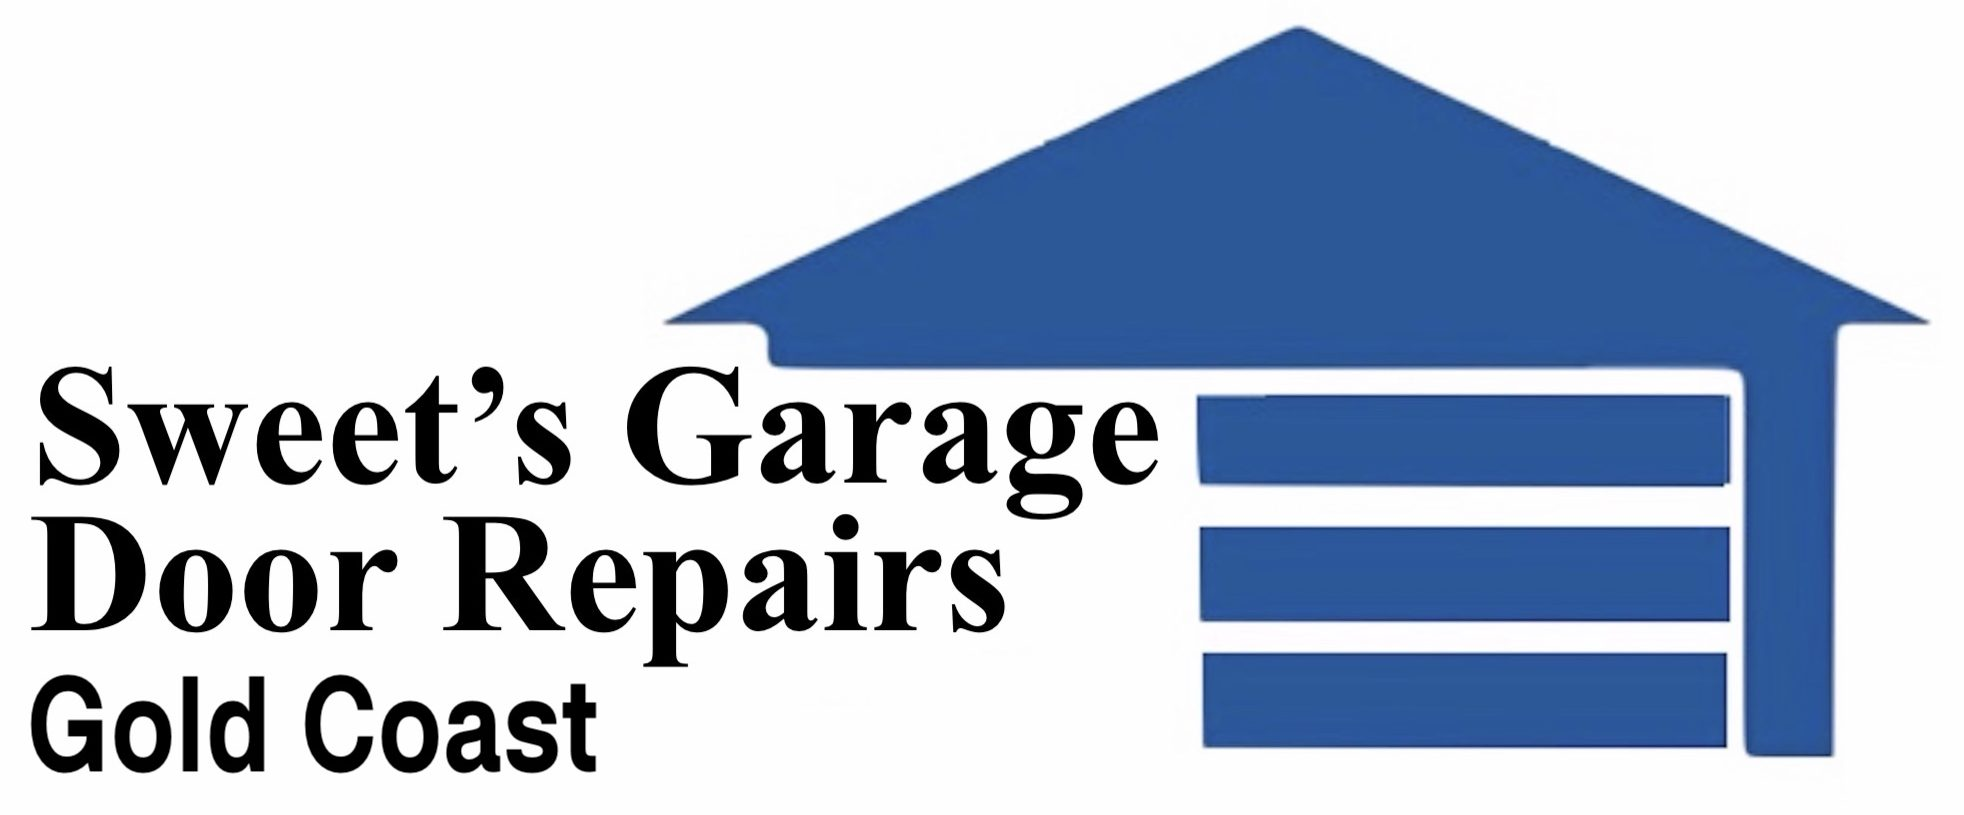 Sweet's Garage Door Repairs Gold Coast